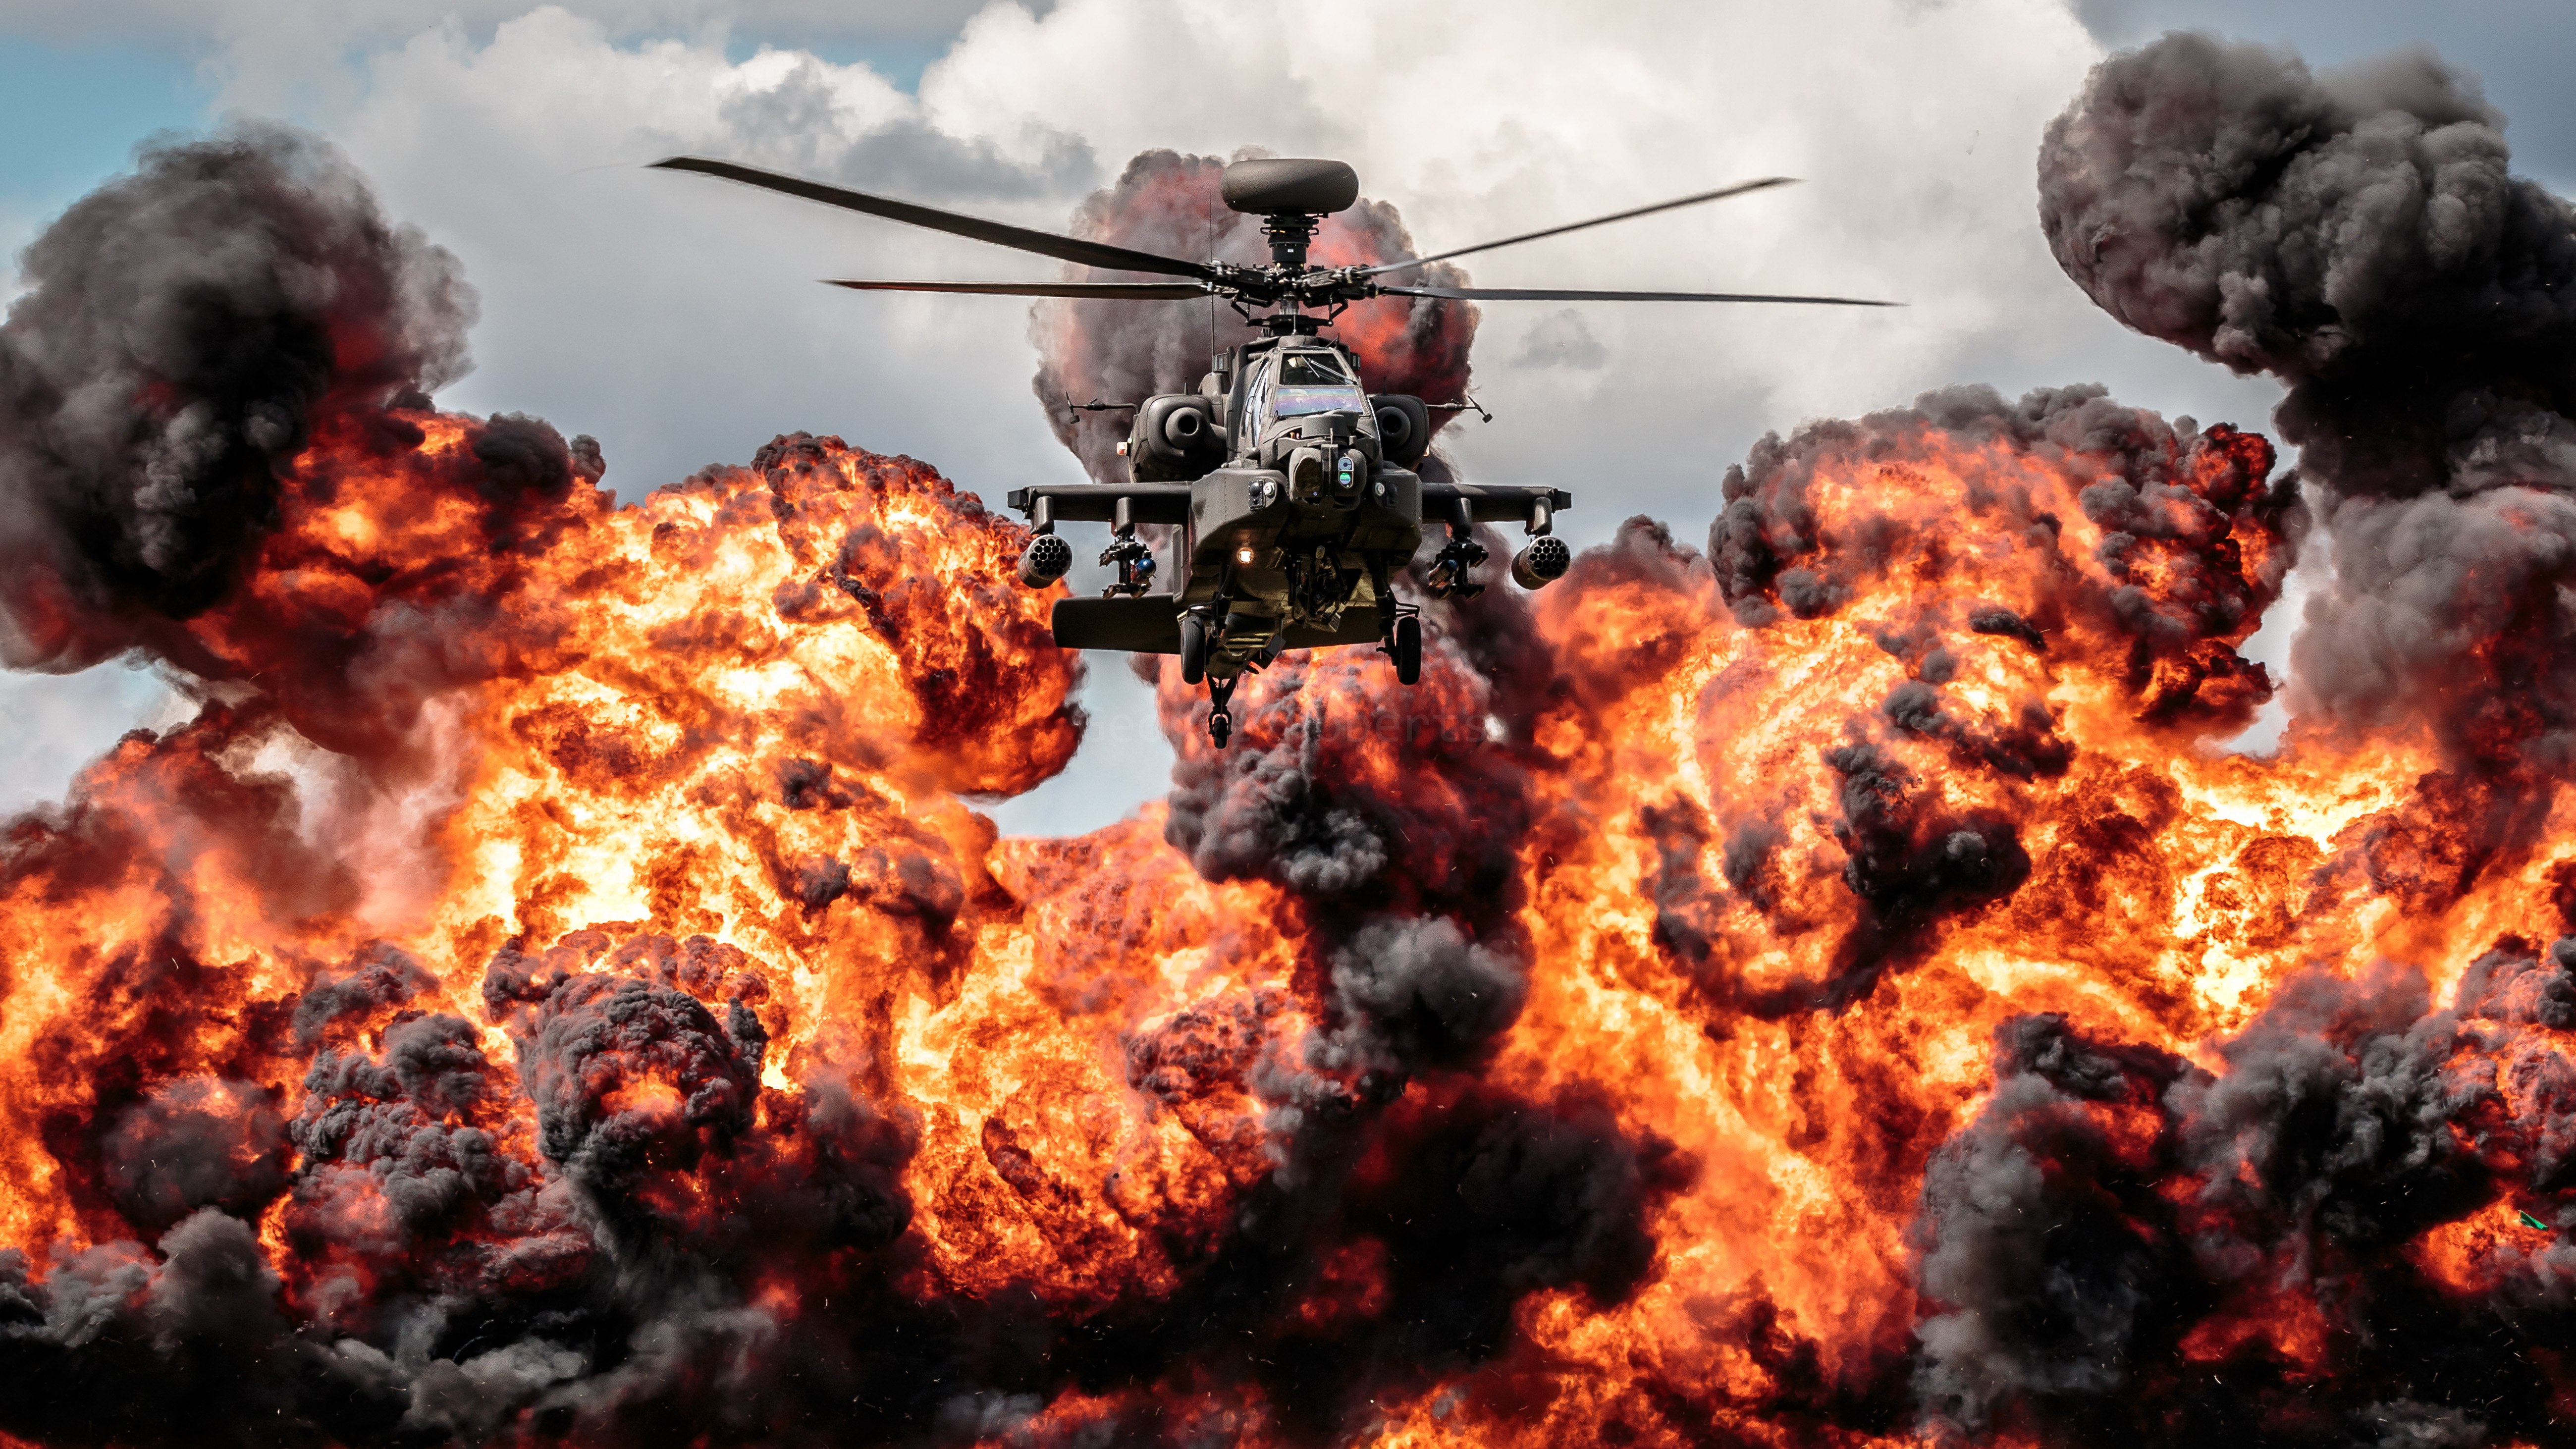 helicopter apache explosion fire